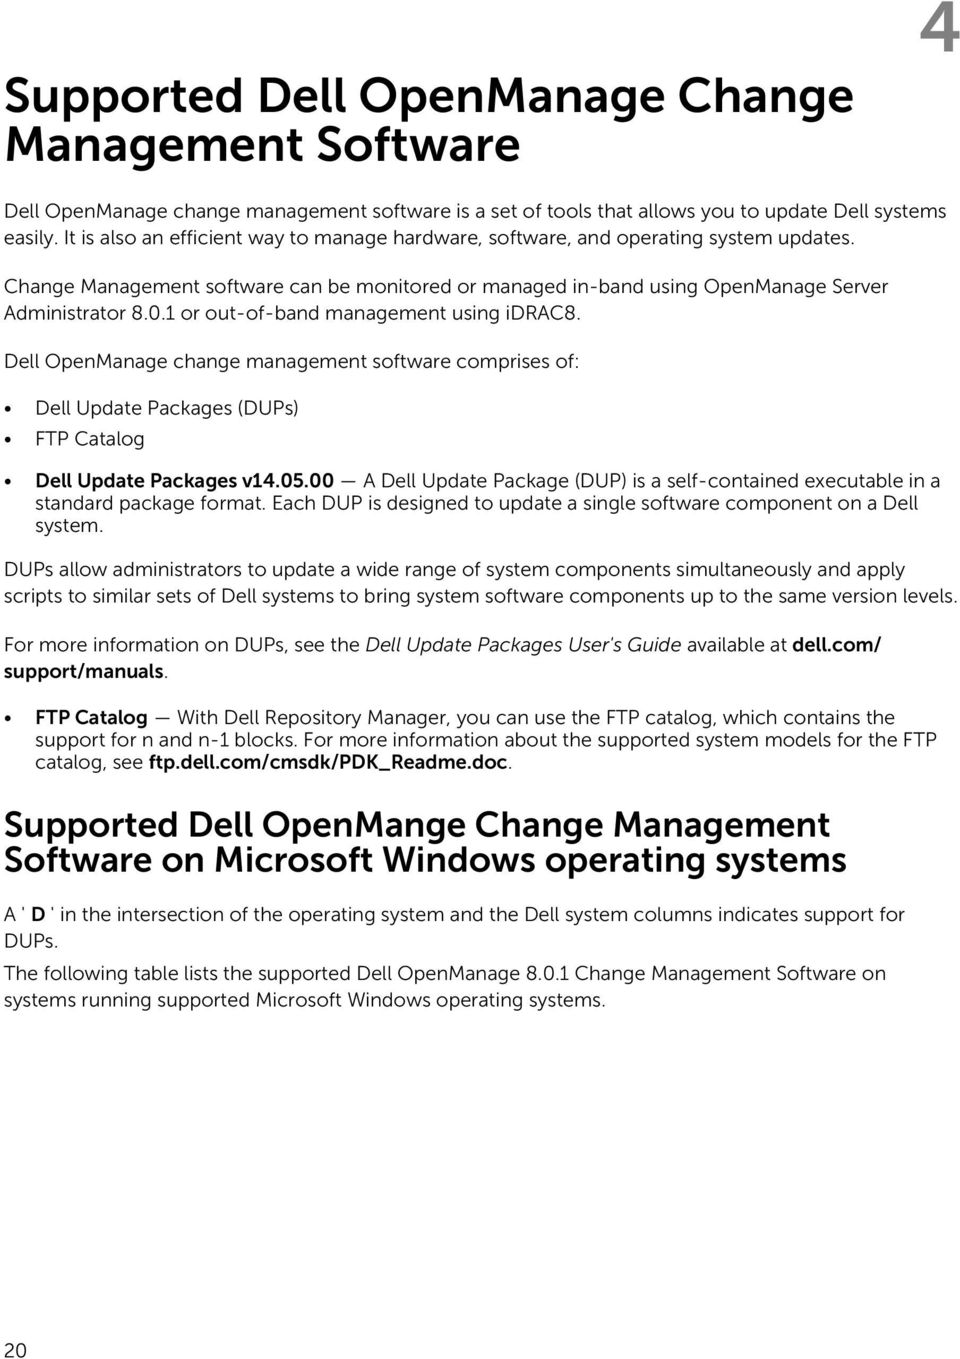 Dell Systems Management OpenManage Software Support Matrix Version PDF